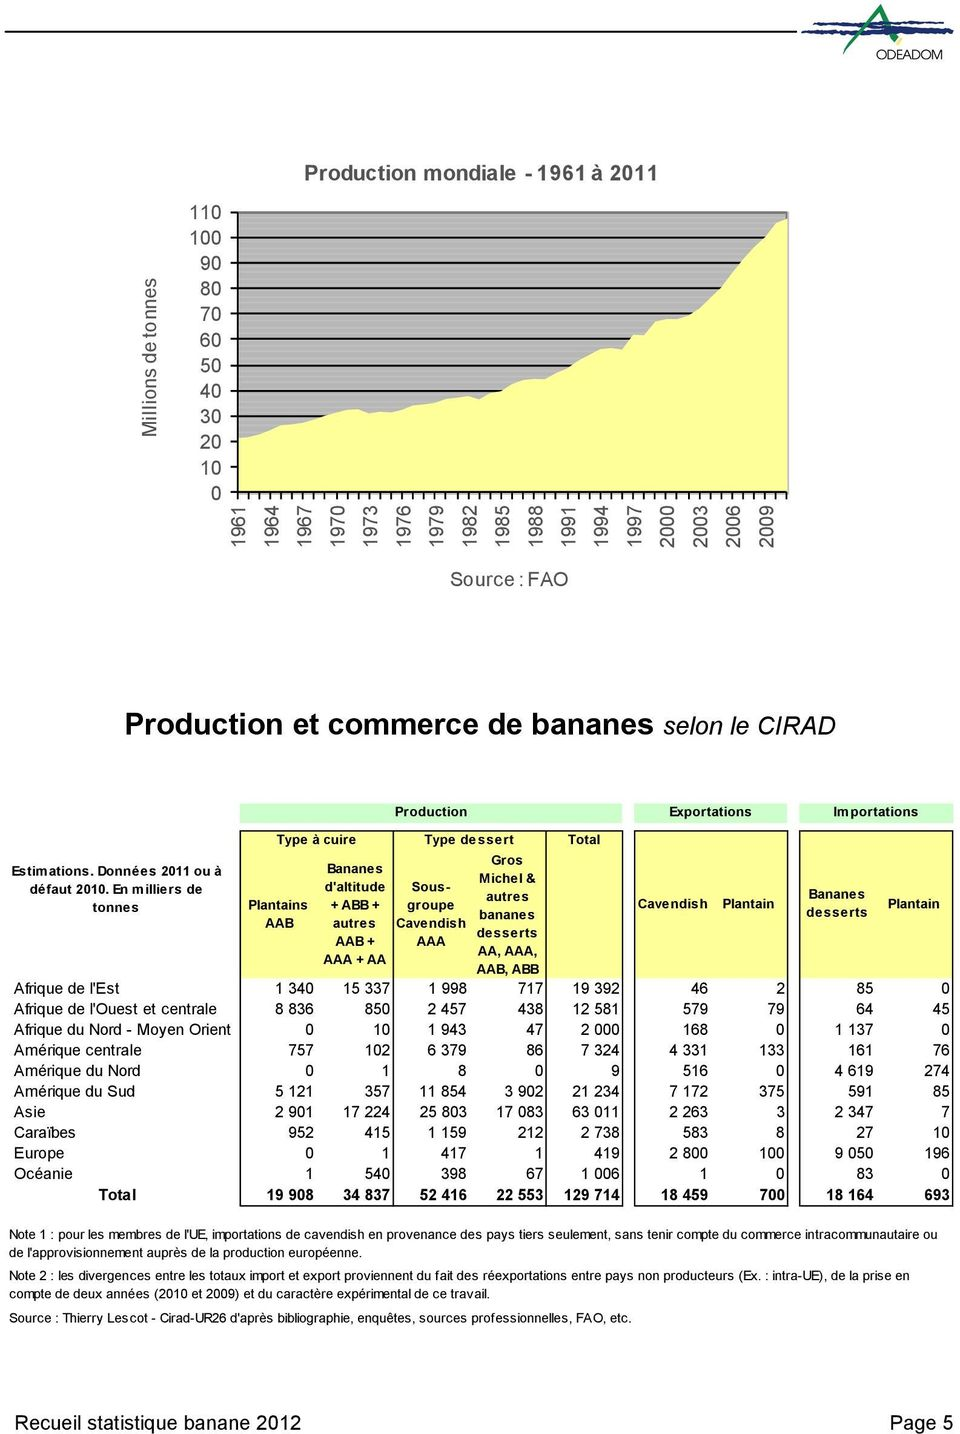 En milliers de tonnes Type à cuire Plantains AAB Bananes d'altitude + ABB + autres AAB + AAA + AA Type dessert Sousgroupe Cavendish AAA Gros Michel & autres bananes desserts AA, AAA, AAB, ABB Afrique